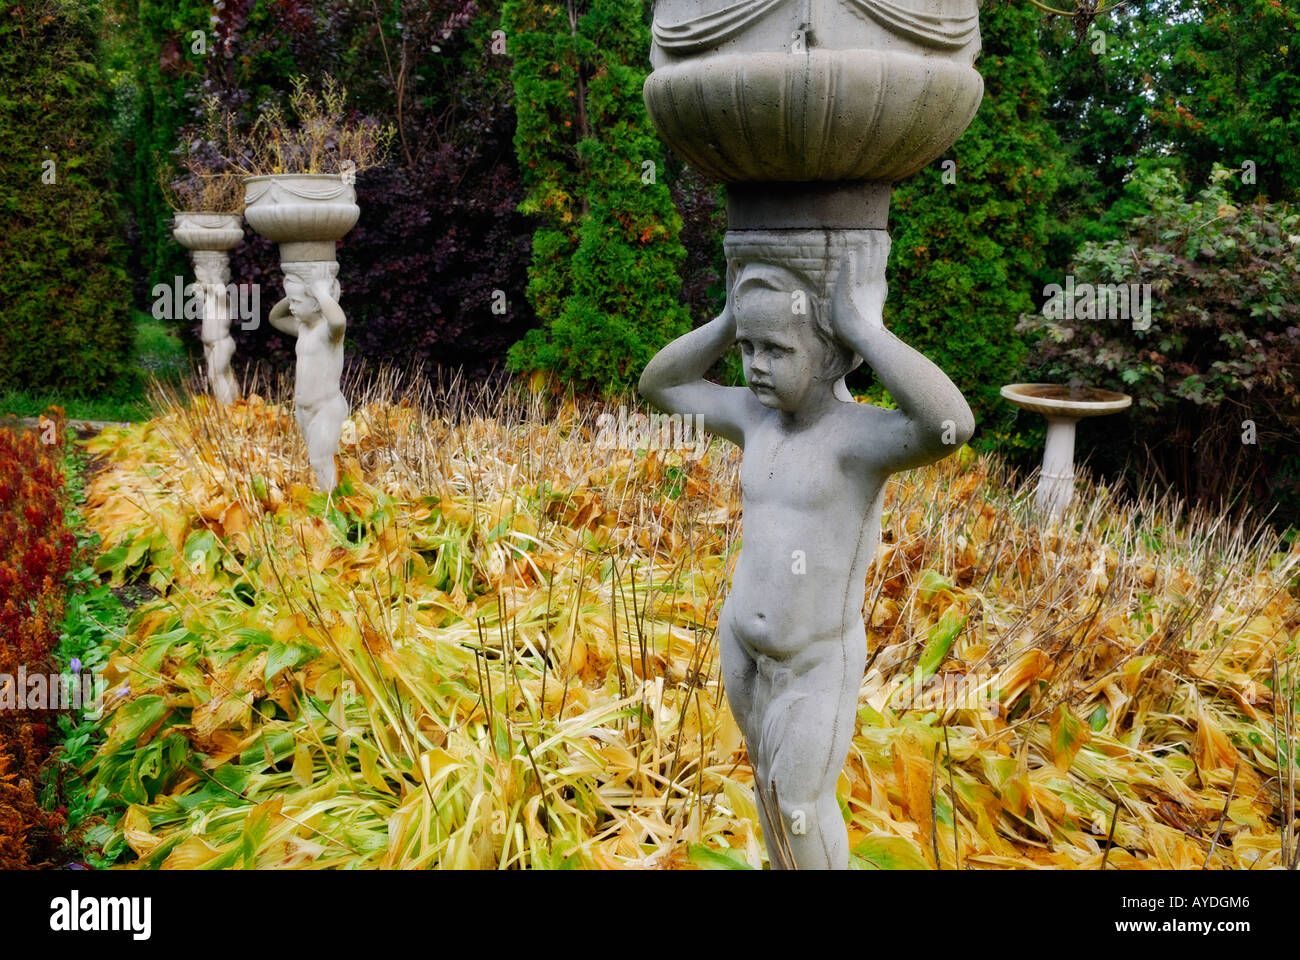 Marvelous Statues Of Young Boys Holding Planters On Their Heads In A Fall Garden  Ontario